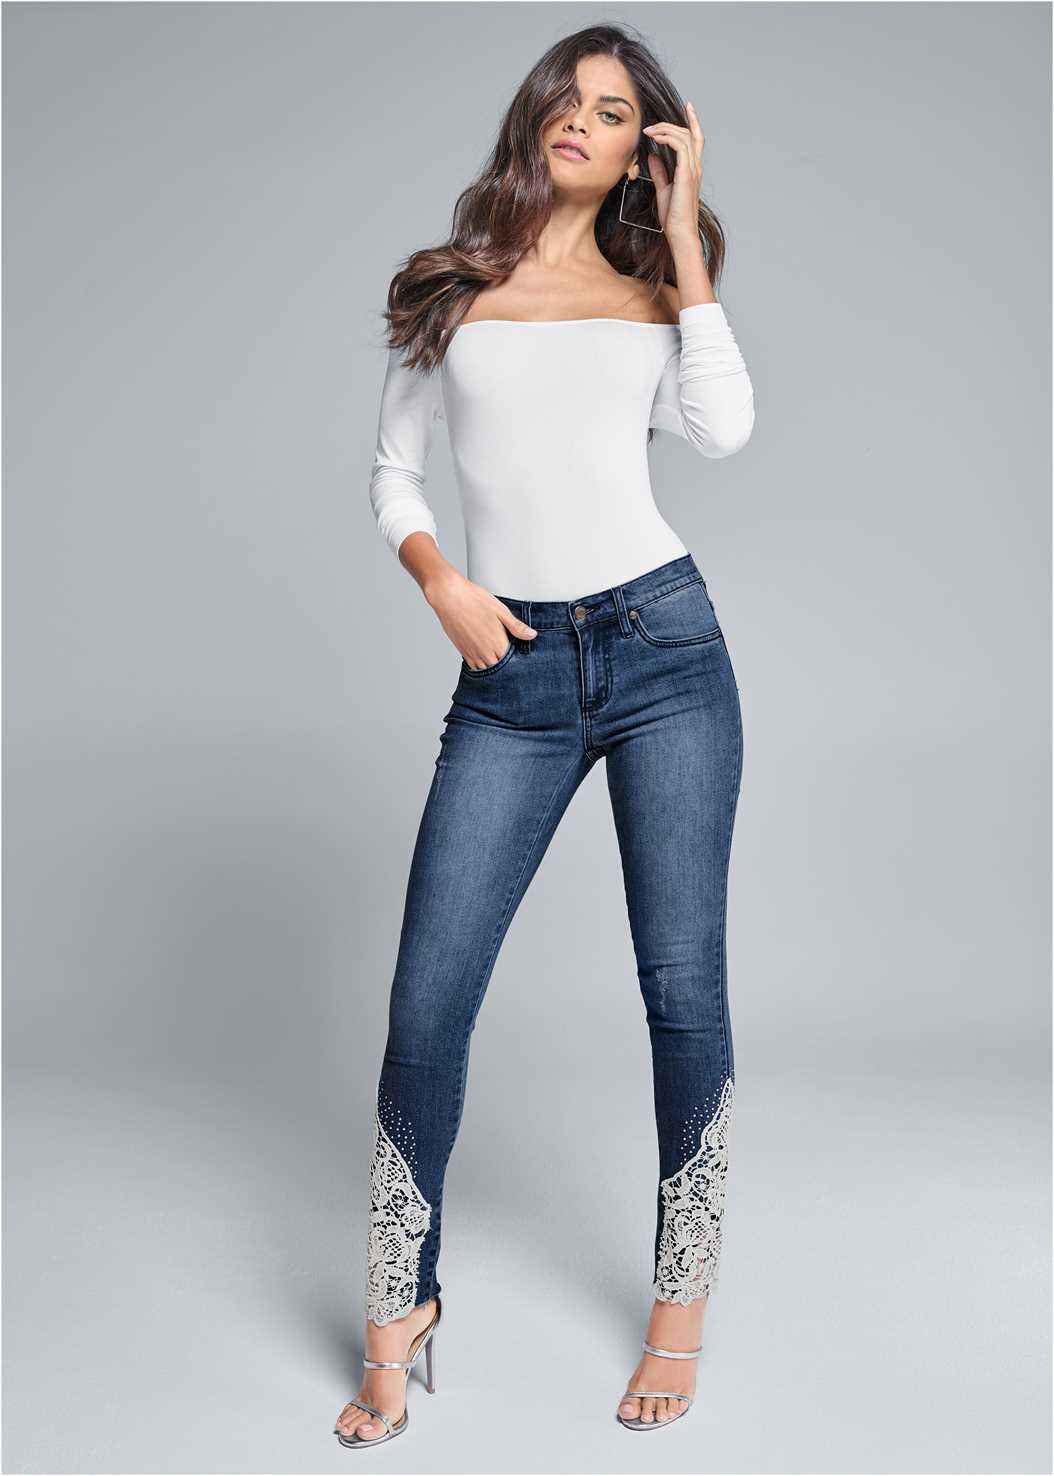 Lace Inset Skinny Jeans,Off The Shoulder Top,High Heel Strappy Sandals